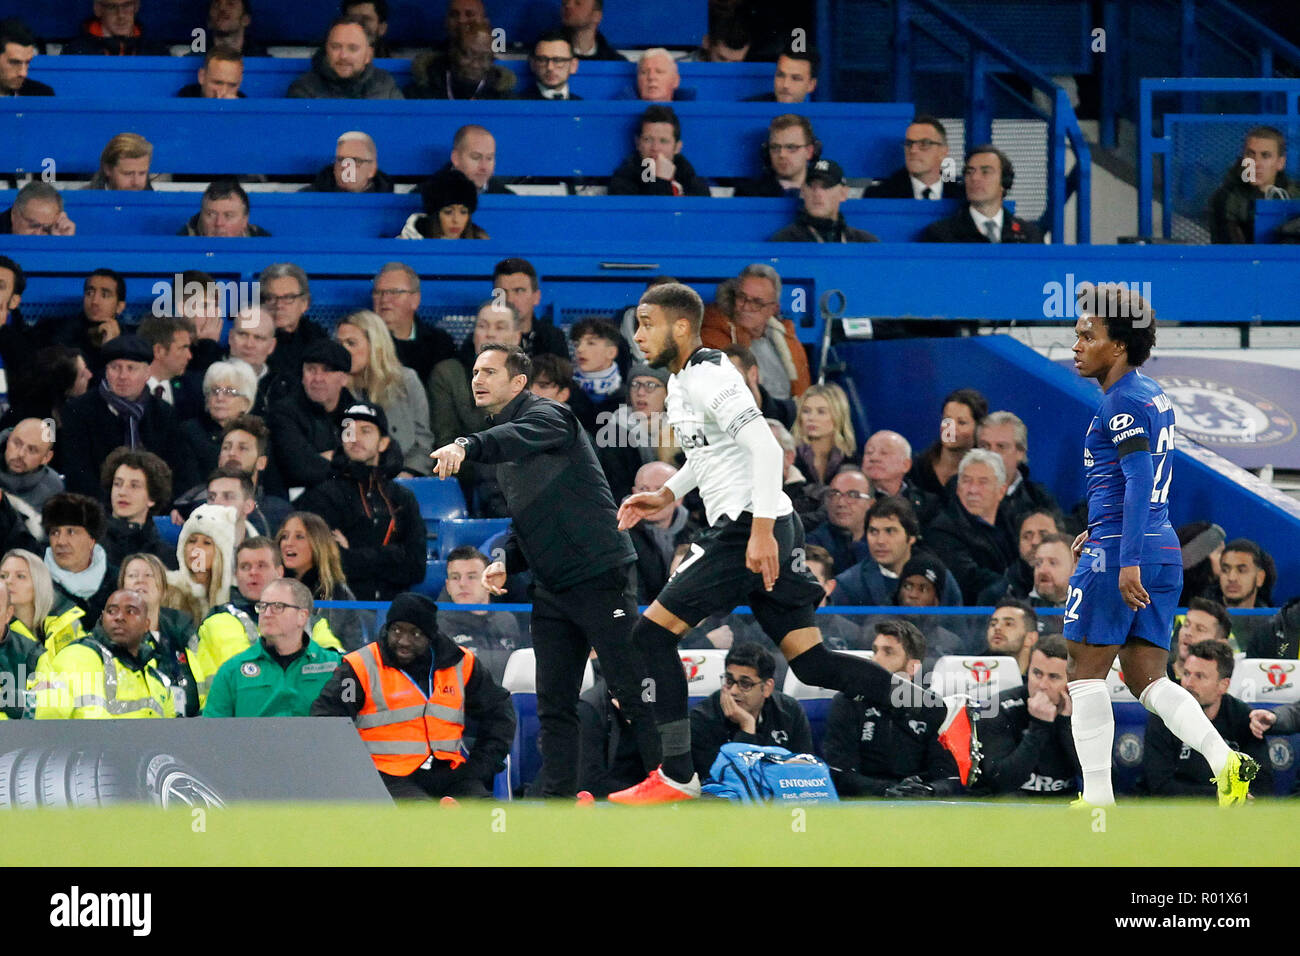 Derby County manager, Frank Lampard during the EFL Carabao Cup Round of 16 match between Chelsea and Derby County at Stamford Bridge, London, England on 31 October 2018. Photo by Carlton Myrie.  Editorial use only, license required for commercial use. No use in betting, games or a single club/league/player publications. - Stock Image